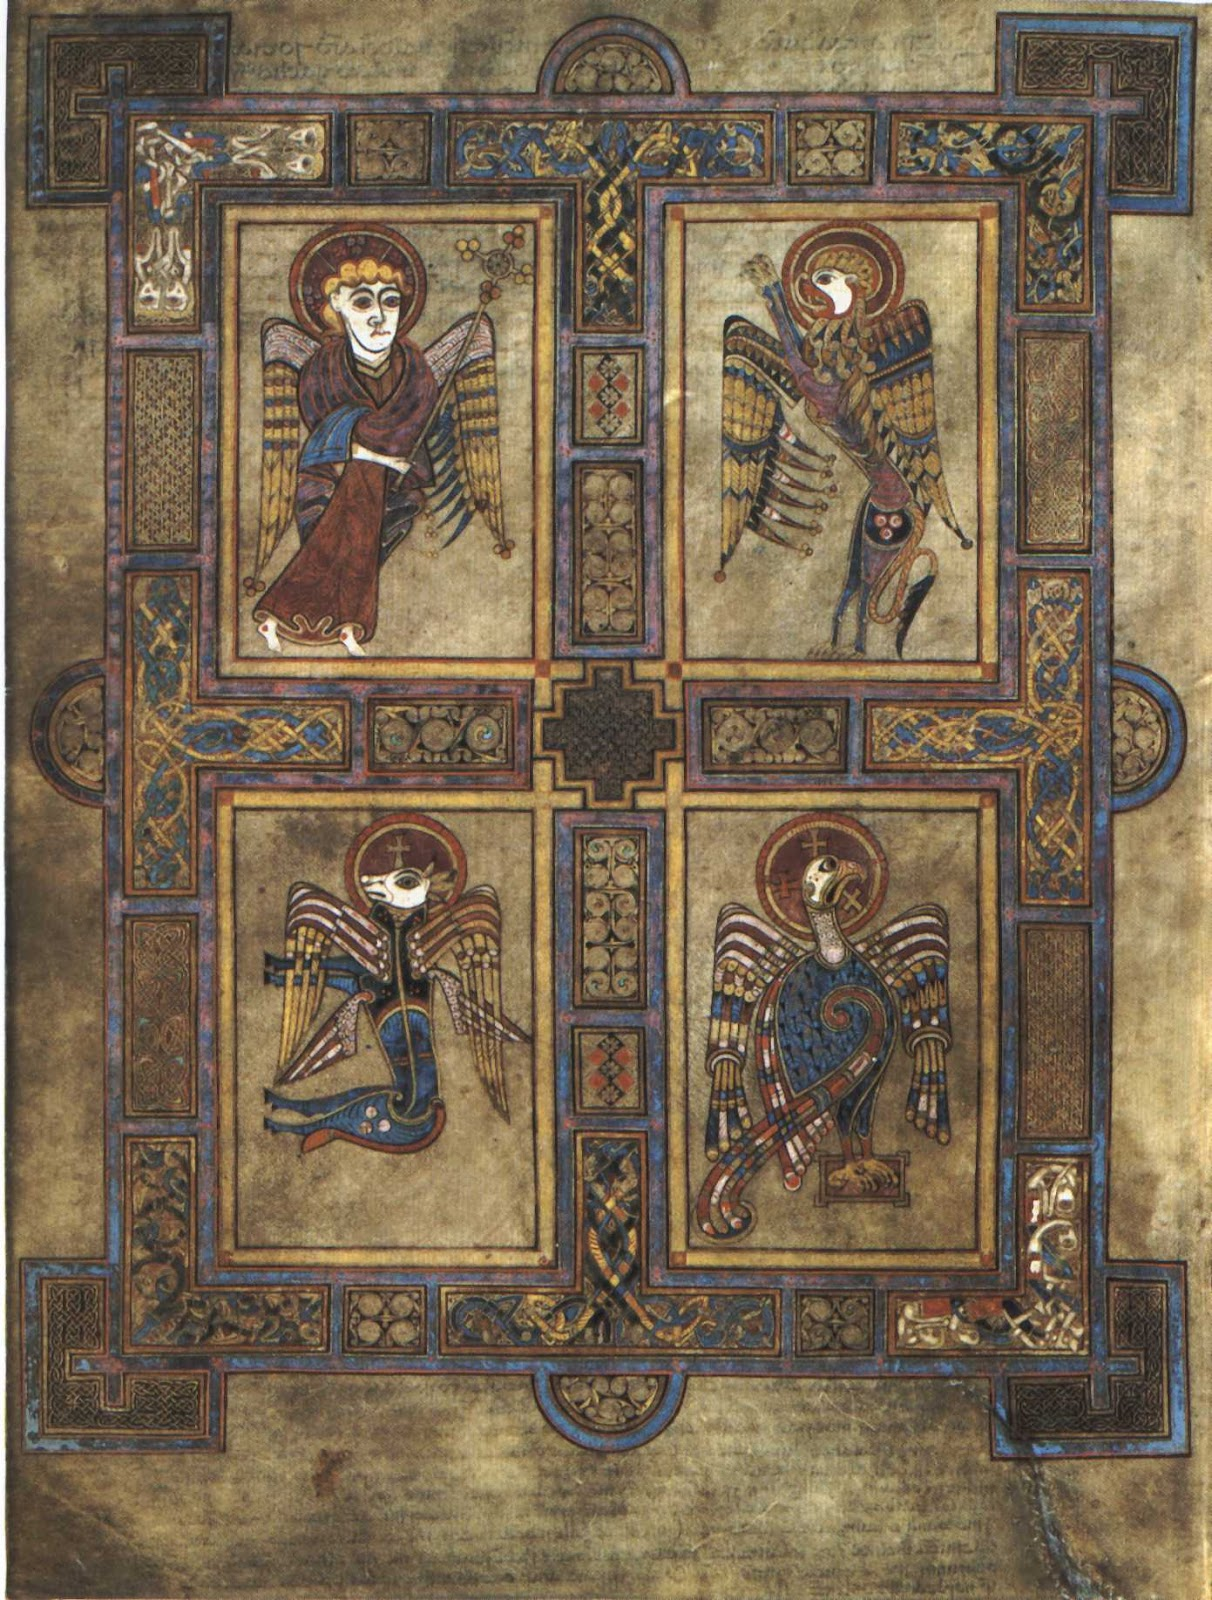 Art history group carolingian iconography in religious art the symbols of the four evangelists are here depicted in the book of kells buycottarizona Choice Image